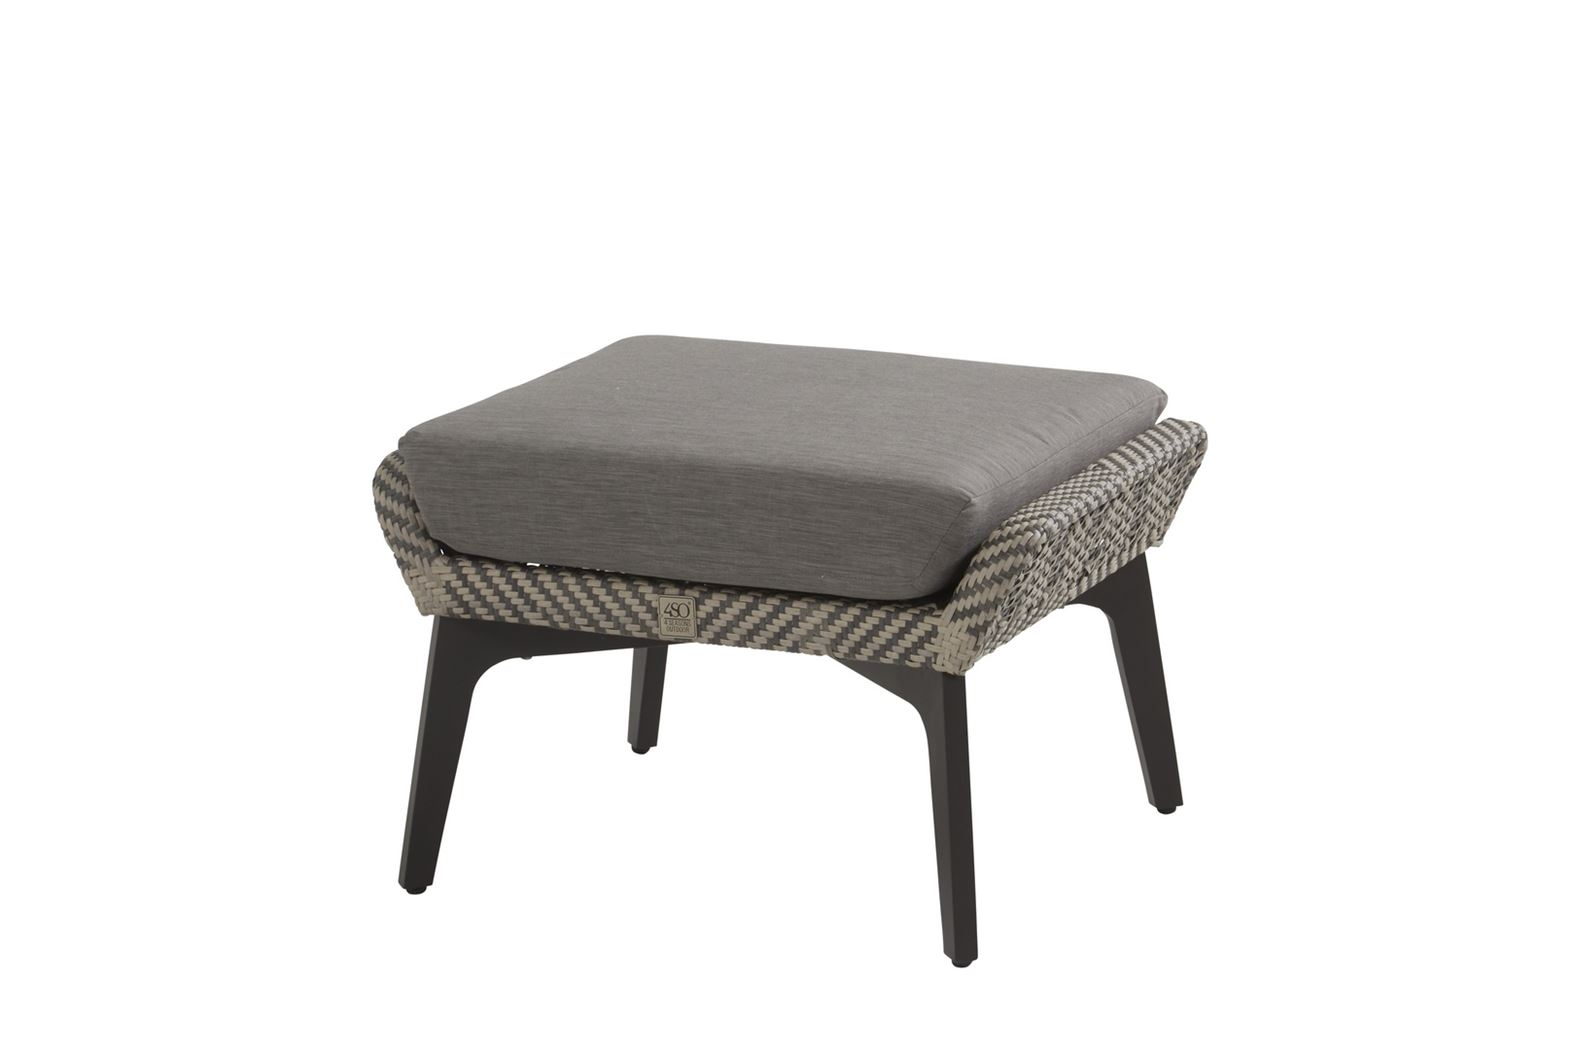 4so savoy footstool with cushion batic